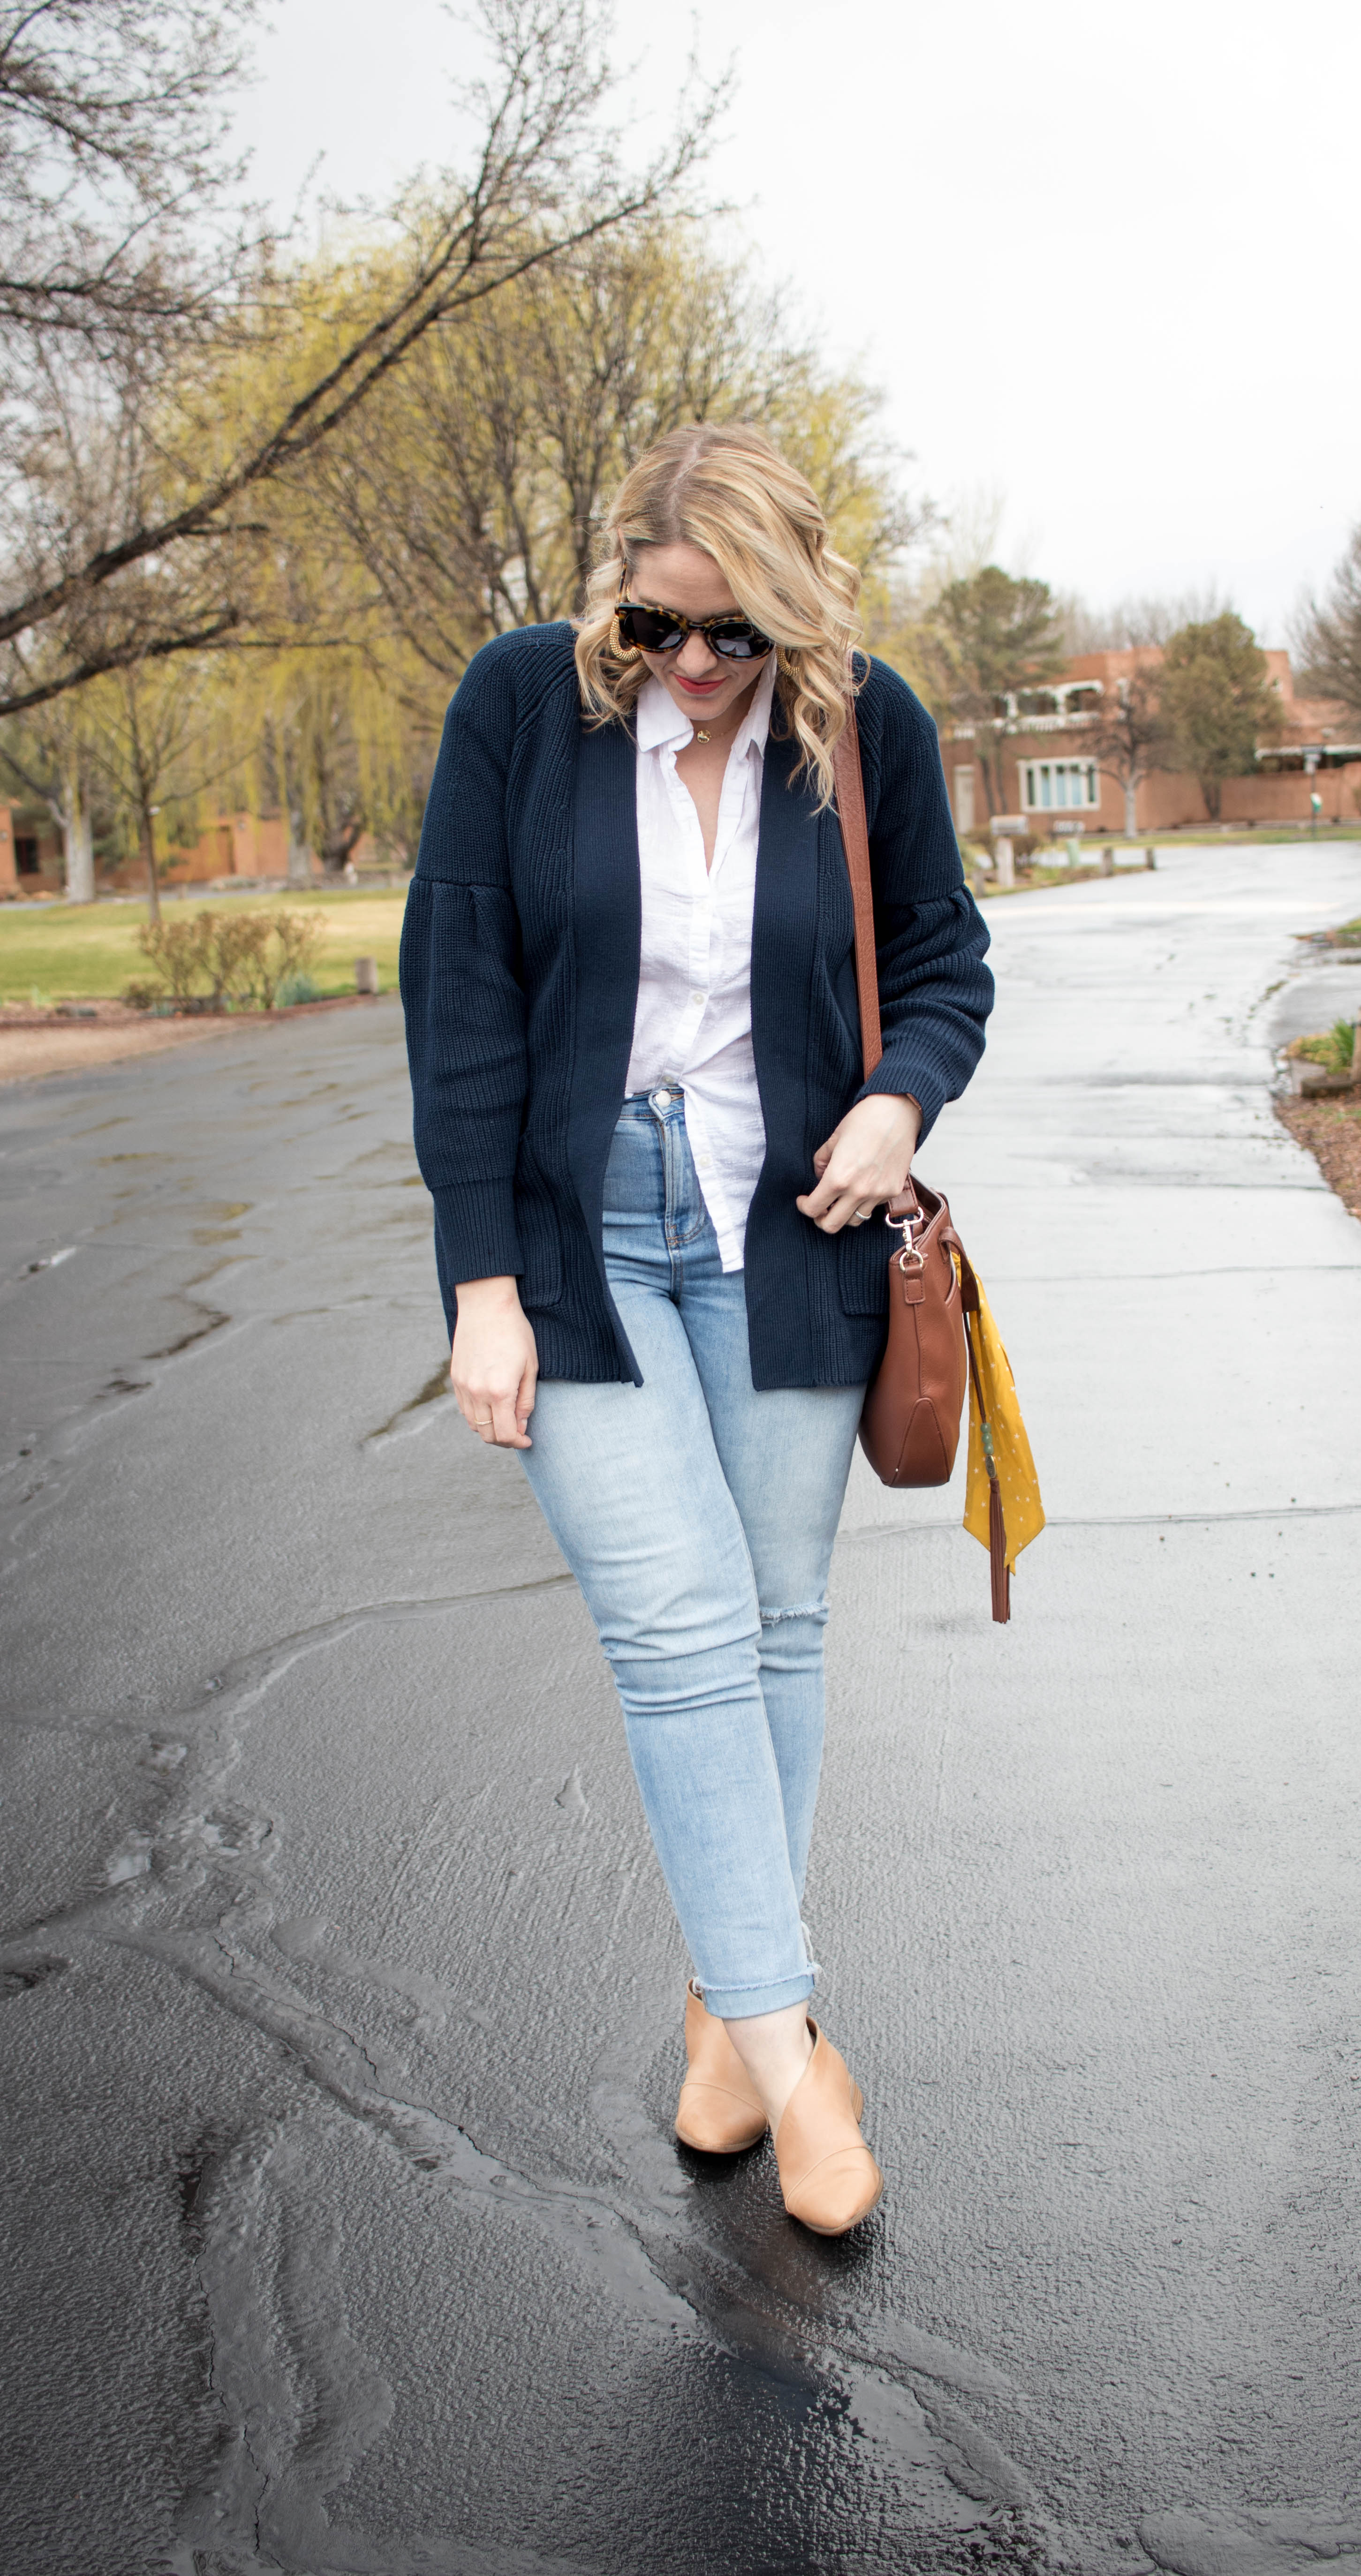 winter to spring transitional outfit #springstyle #springlayers #oldnavystyle